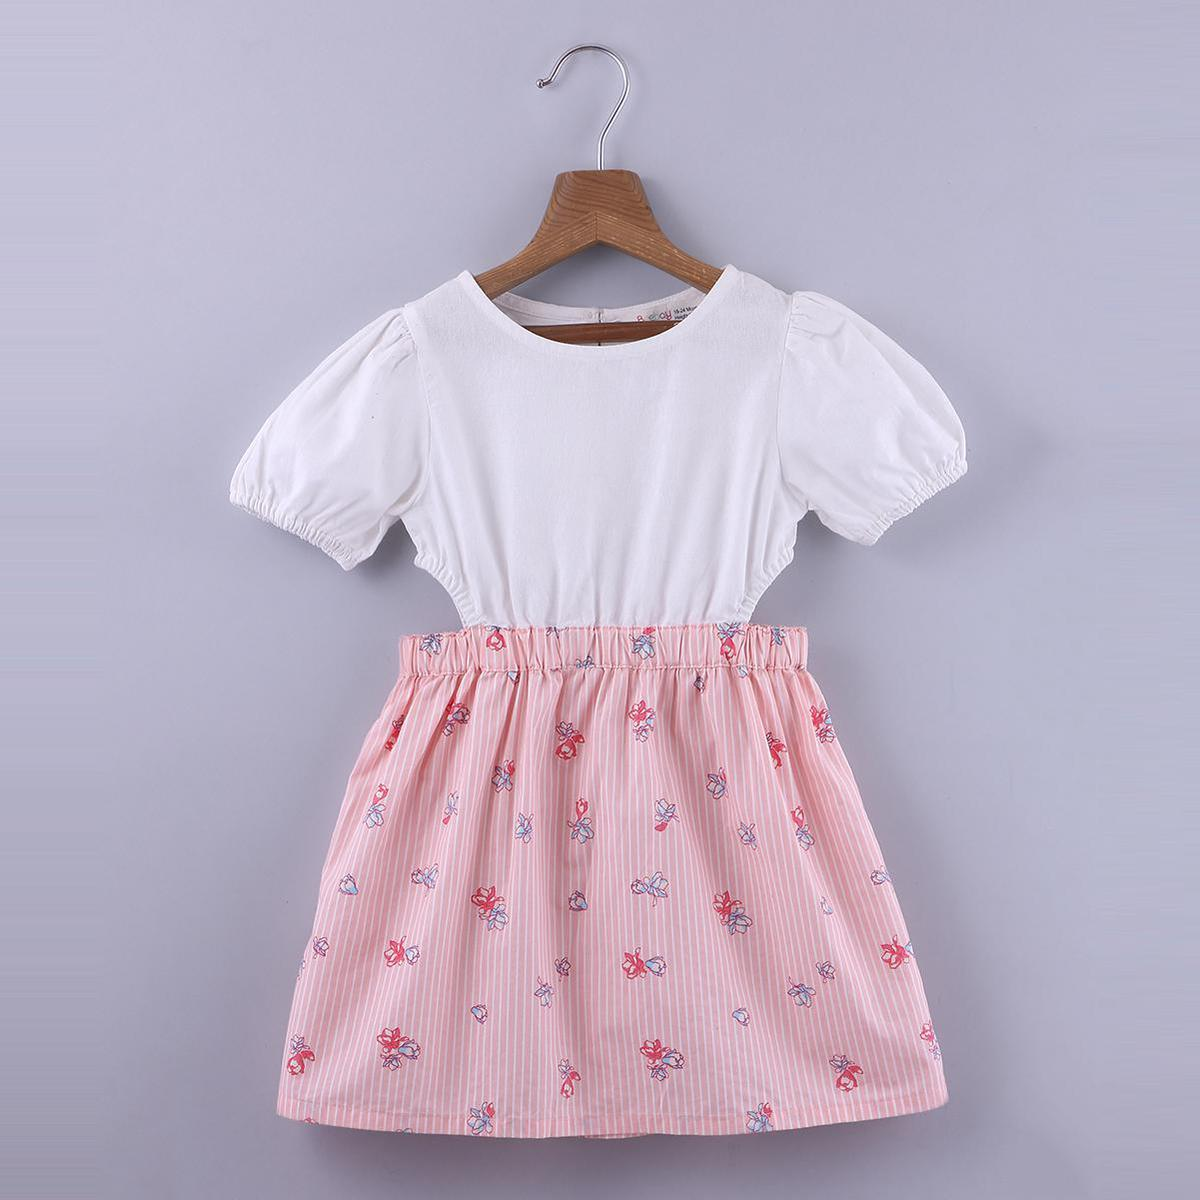 Beebay - Peach Colored Floral Print Cut-Out Cotton Dress For Girls